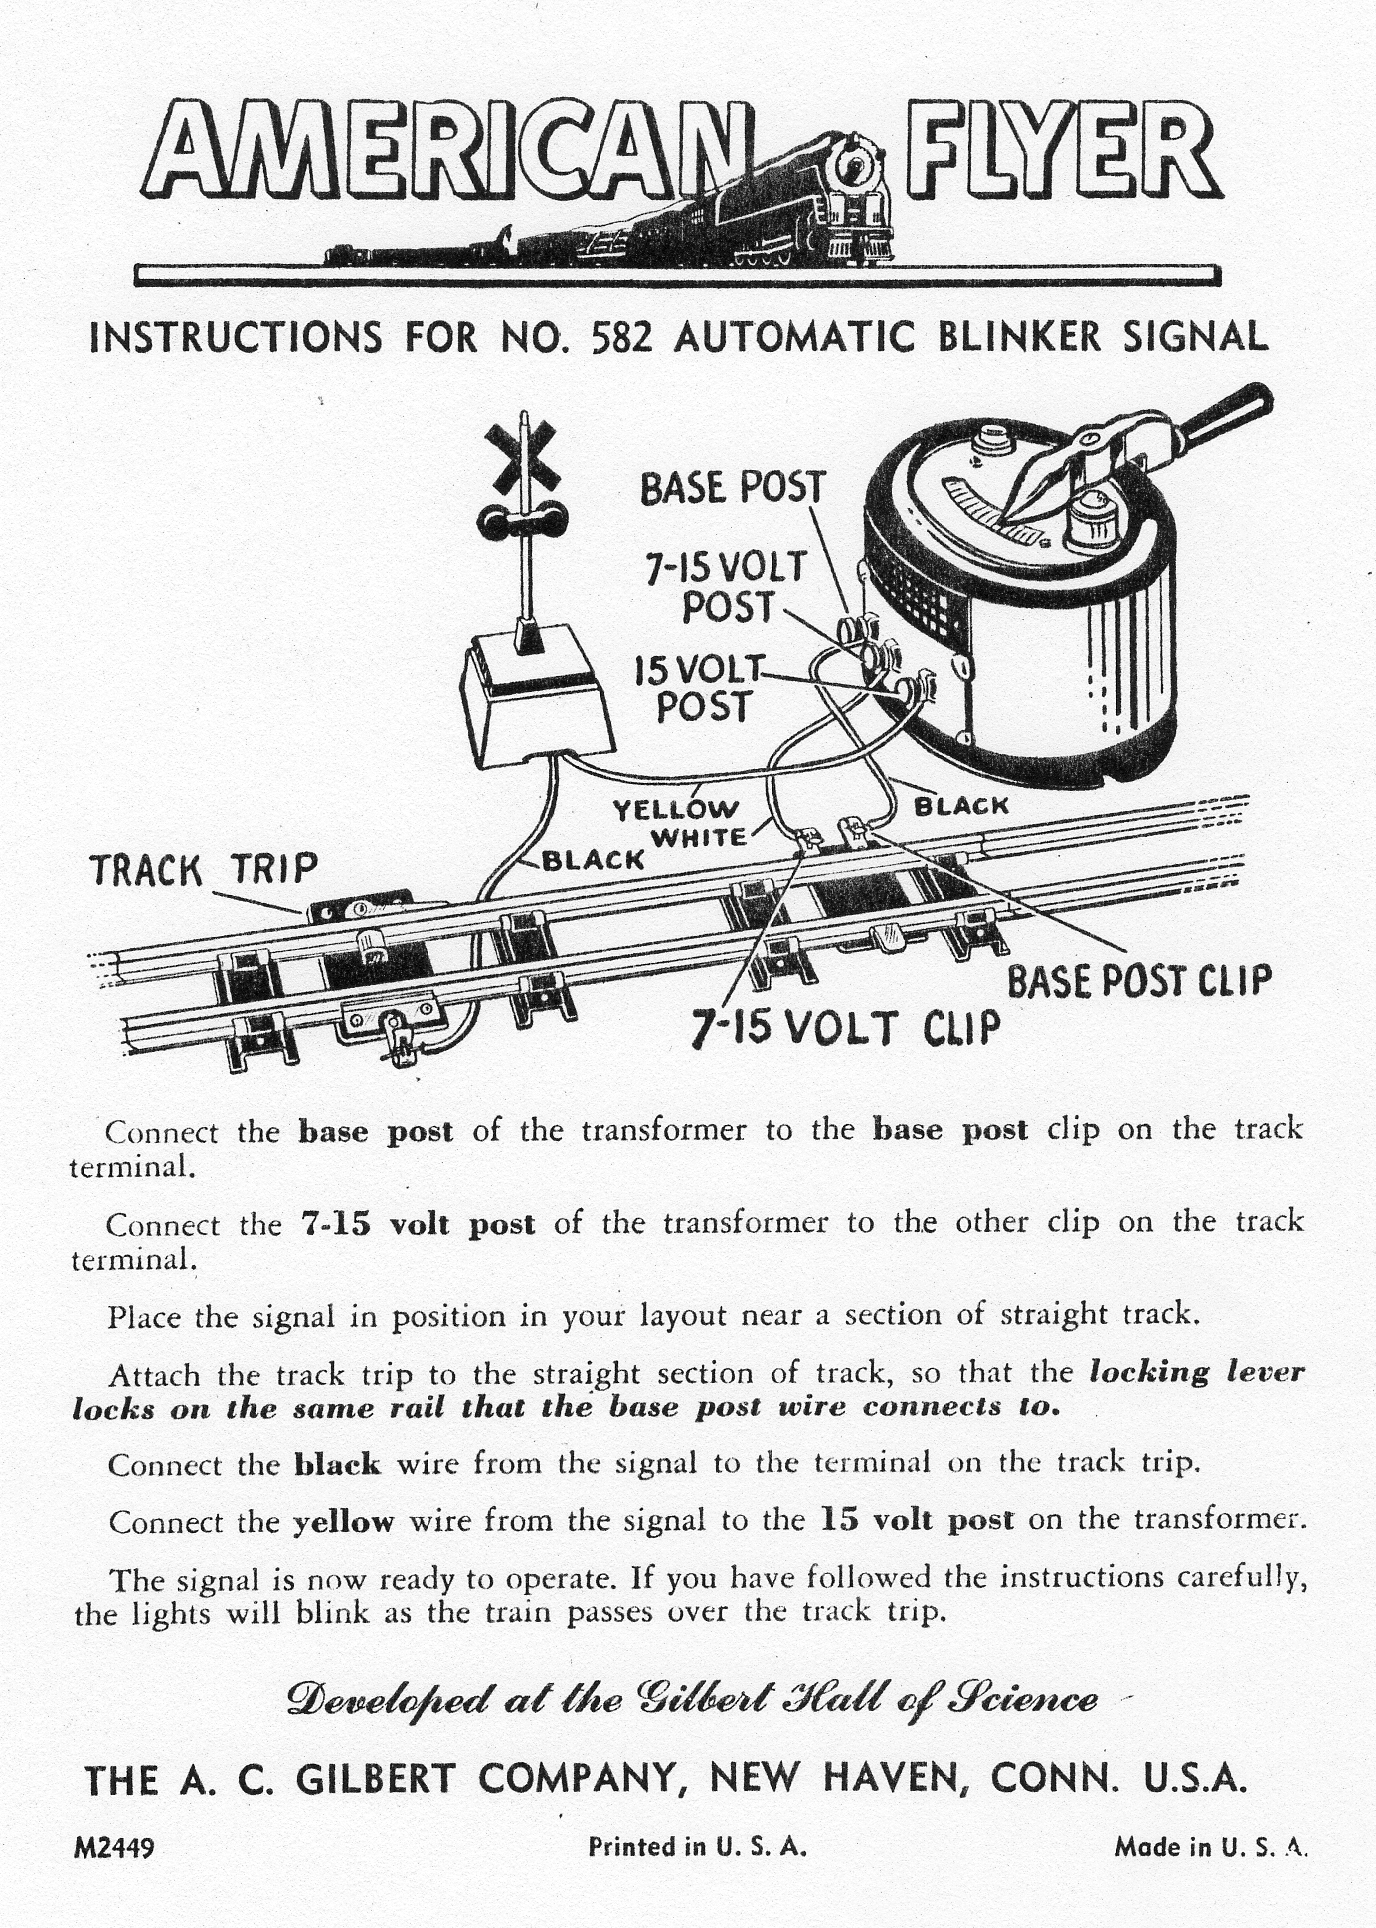 American Flyer Automatic Blinker Signal 582 Instructions